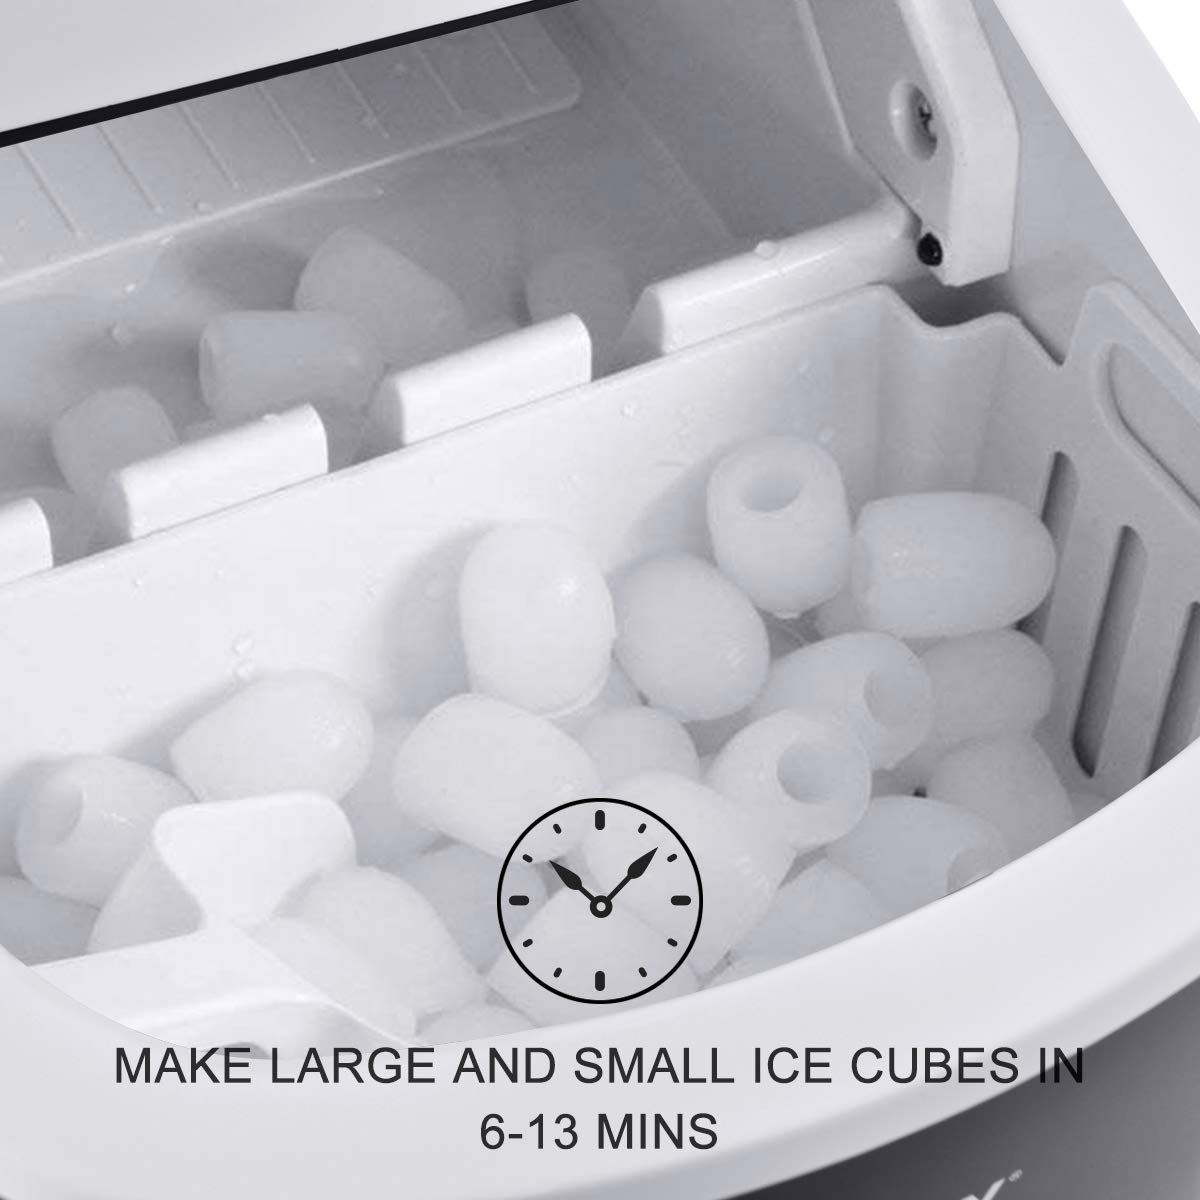 COSTWAY Portable Compact Electric Ice Maker Machine Counter Top Mint Green Mini Cube 26lb of Ice Daily